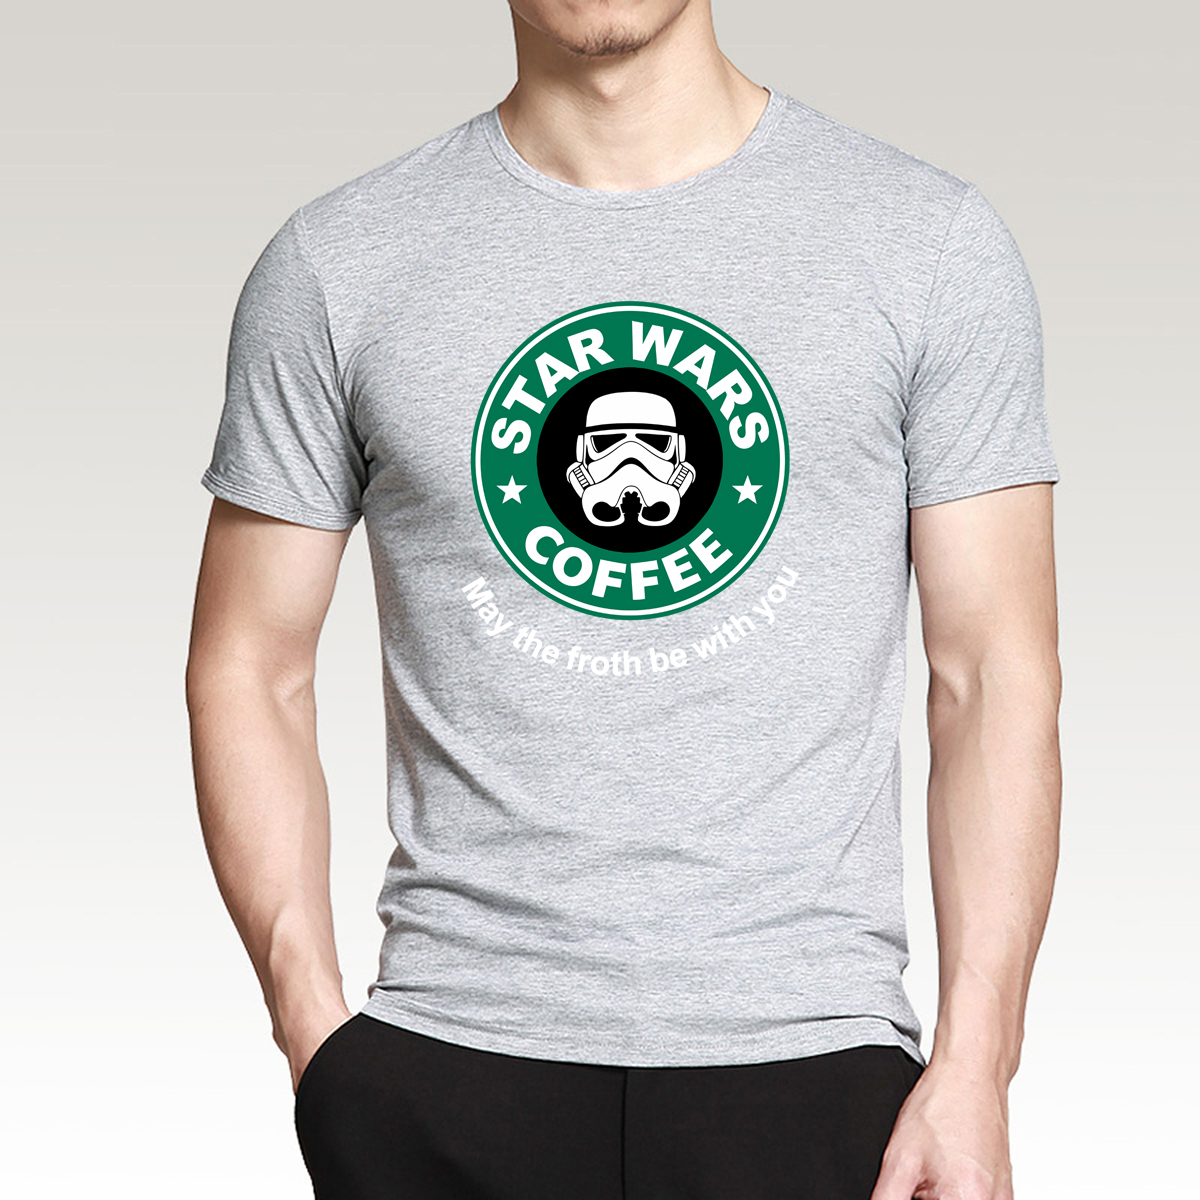 New 2019 Casual Men's T-shirts Custom Design T Shirt Printed star wars black white Cotton Short Sleeve Tops Tee Summer O-Neck